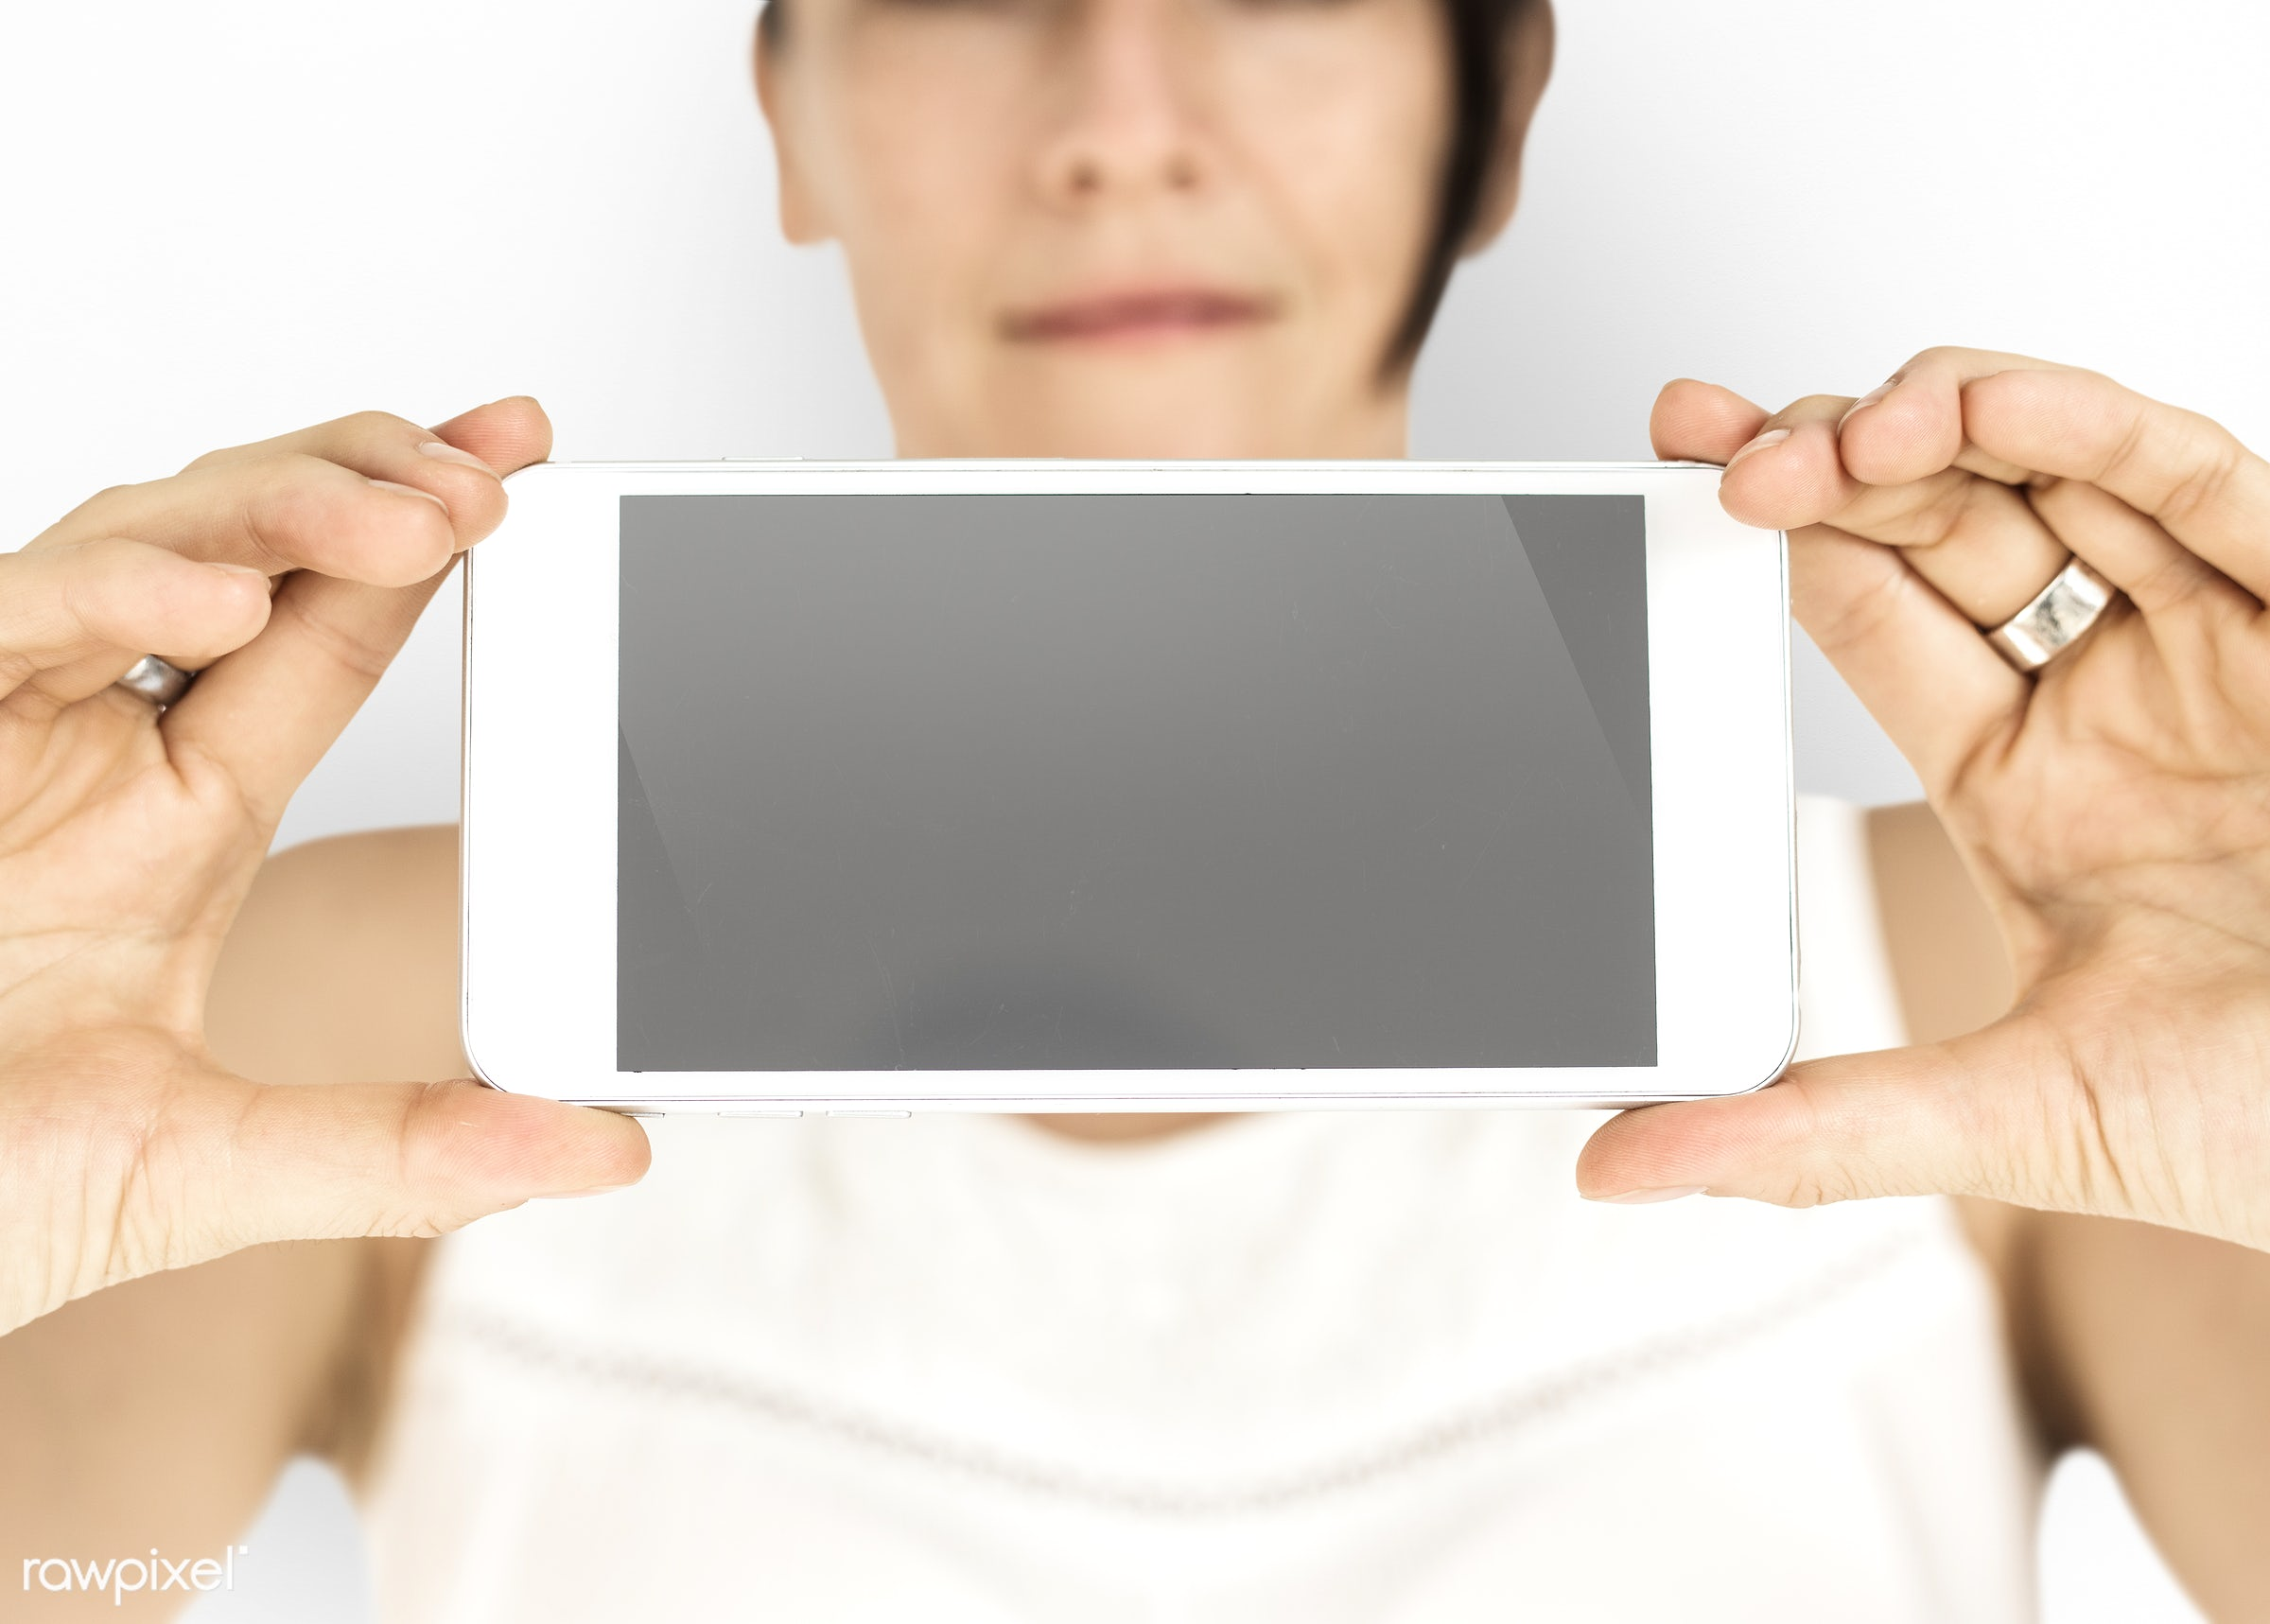 studio, expression, phone, person, technology, portable, holding, isolated on white, object, landscape, people, network,...